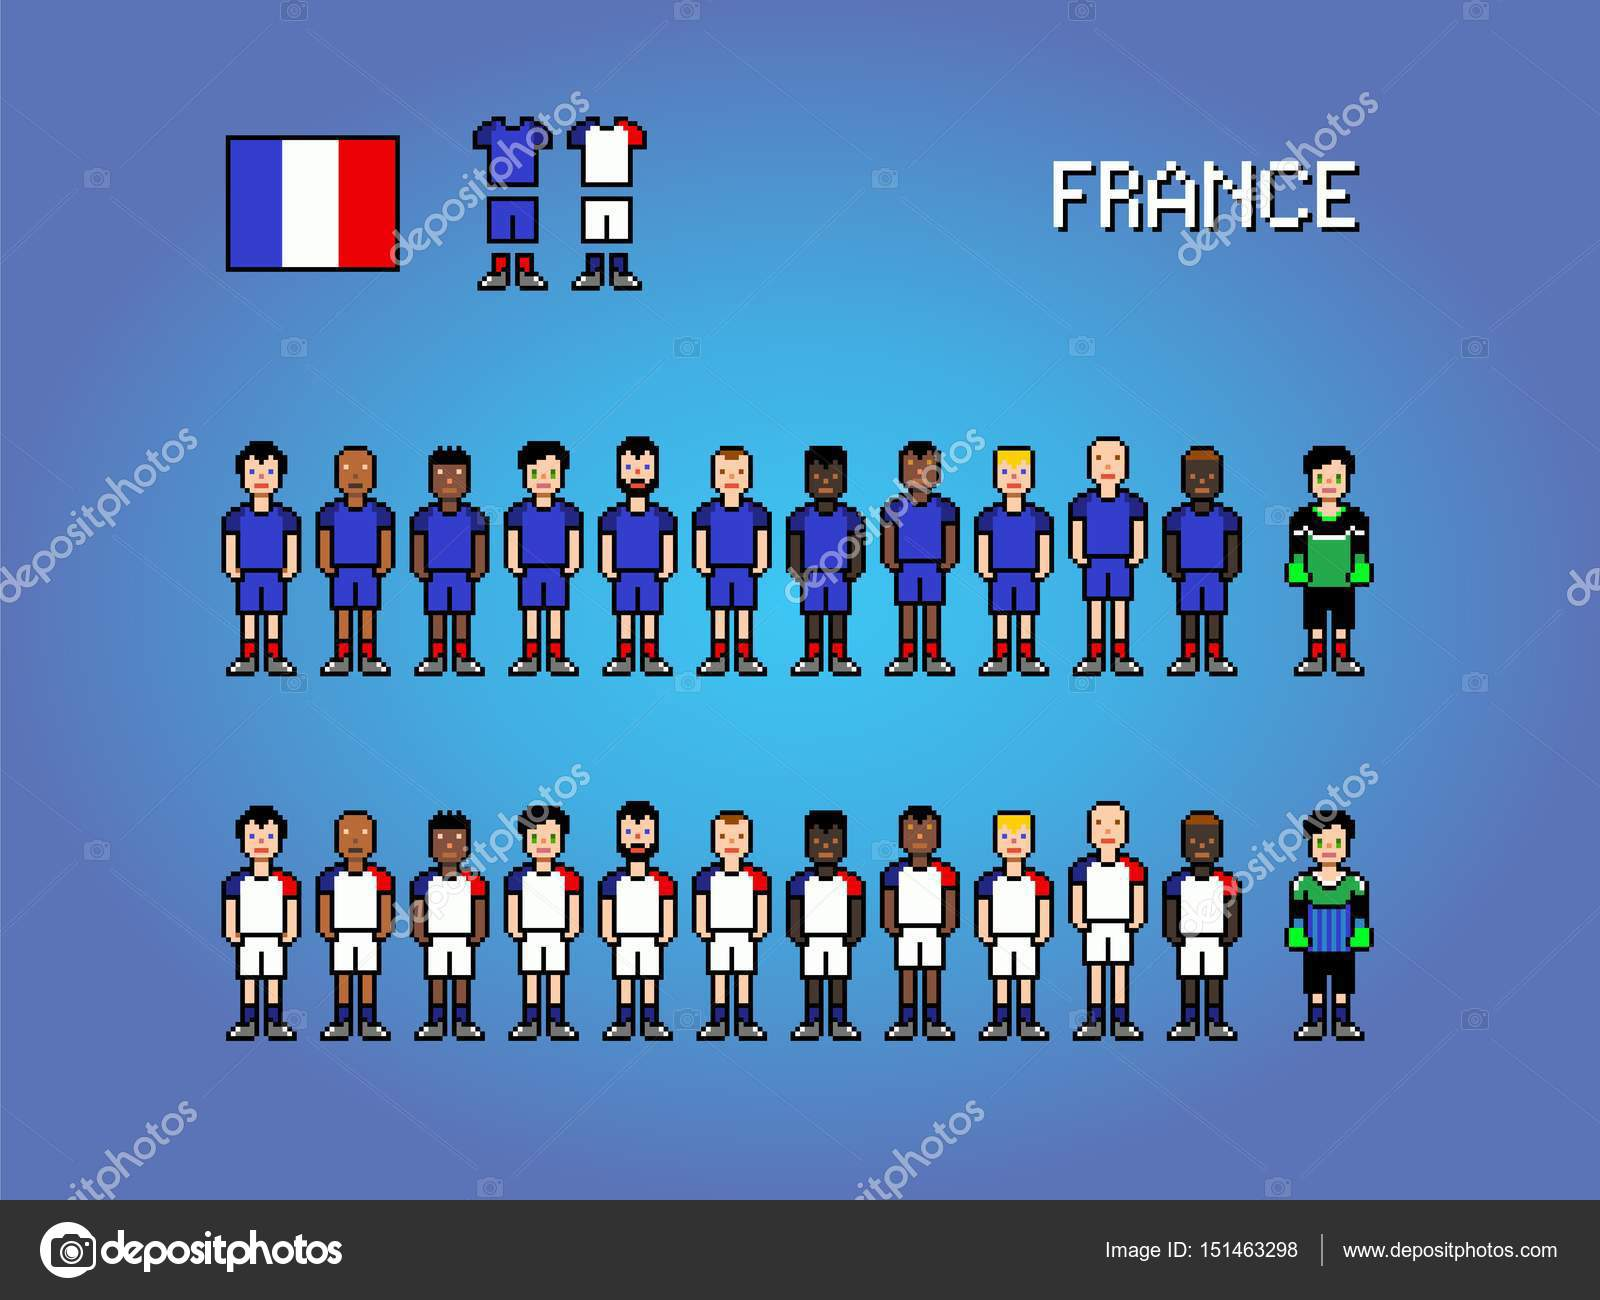 Pixel Art Foot France France National Football Team Pixel